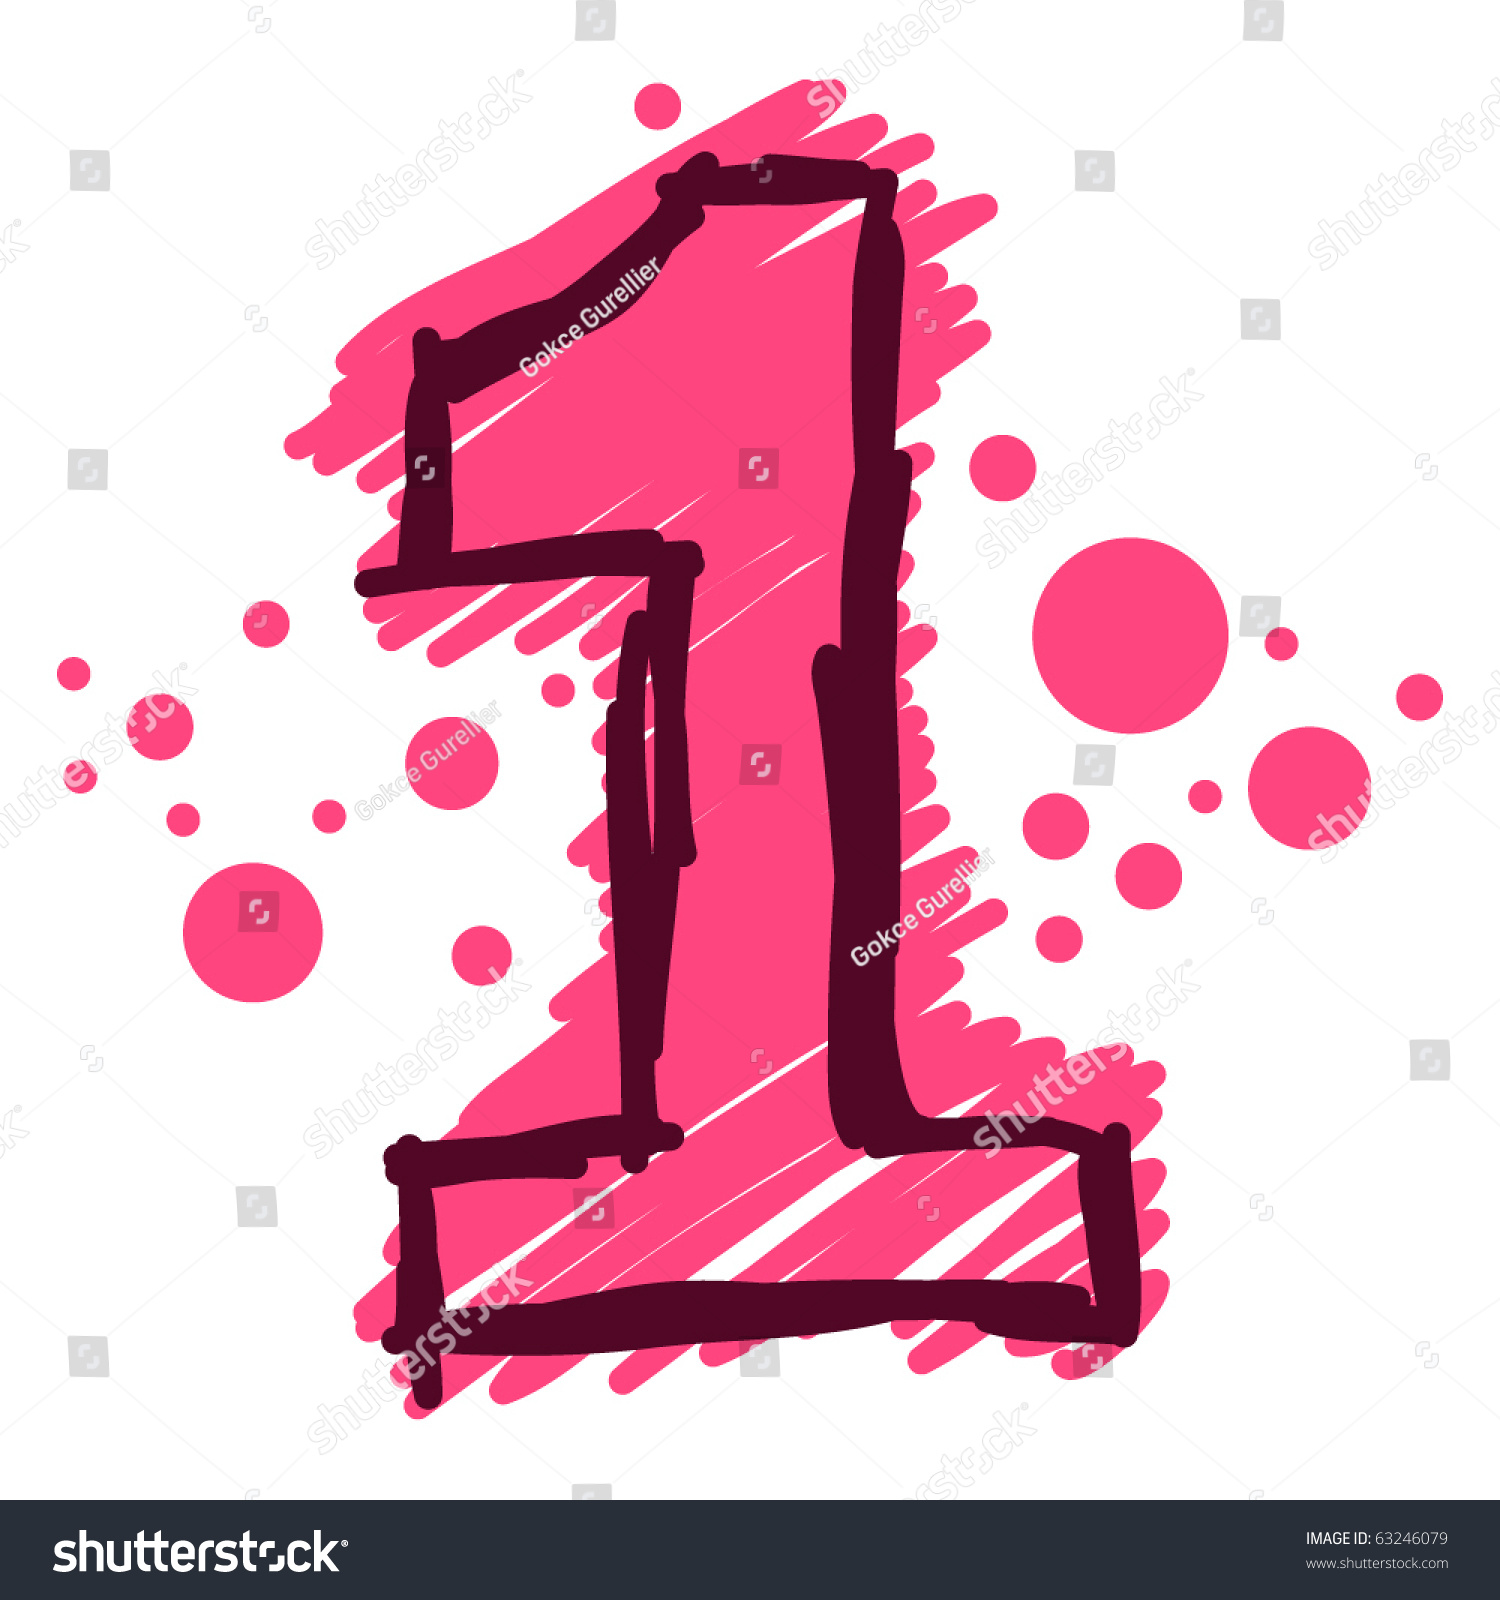 number 1 stock vector royalty free 63246079 shutterstock